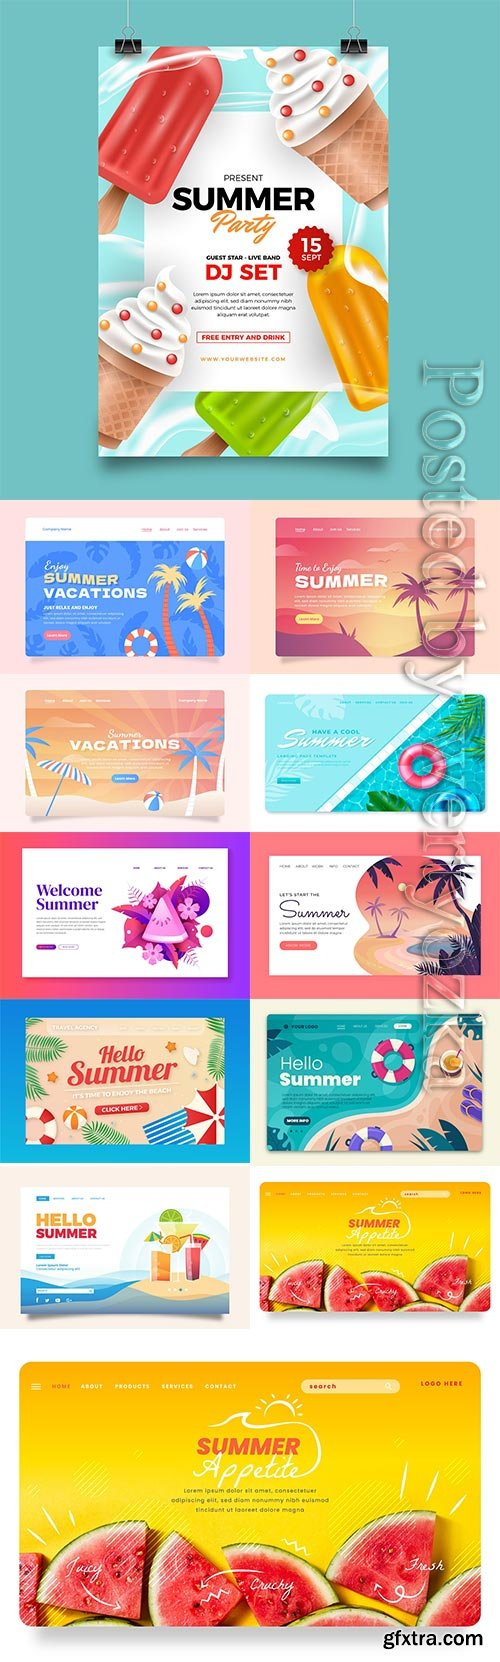 Realistic summer landing page vector template